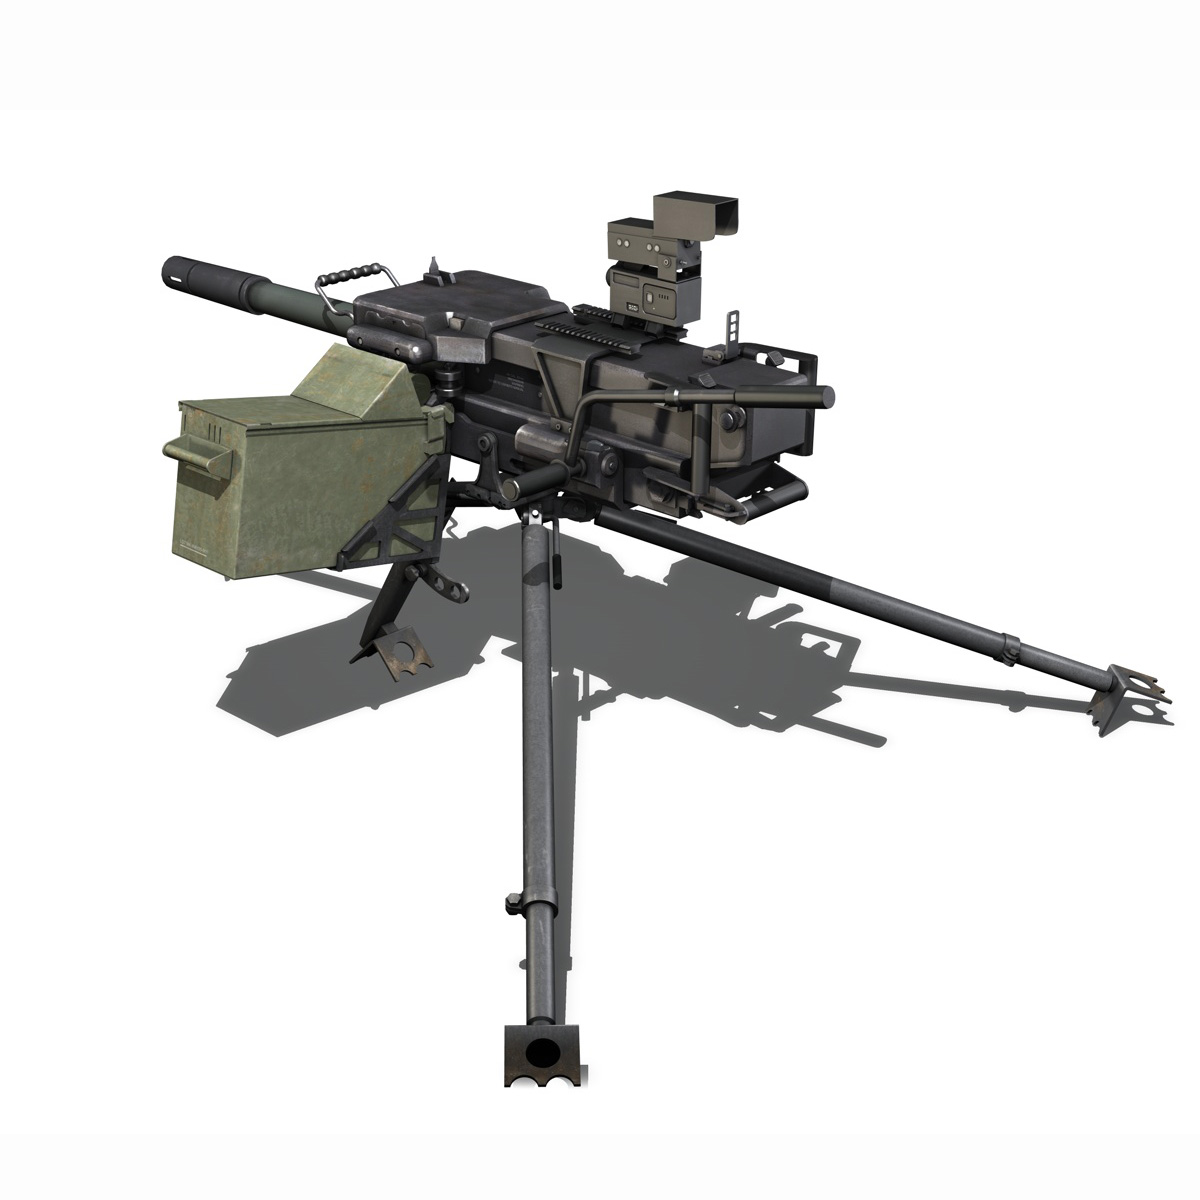 gmg 40mm grenade machine gun 3d model 3ds c4d lwo obj 264285